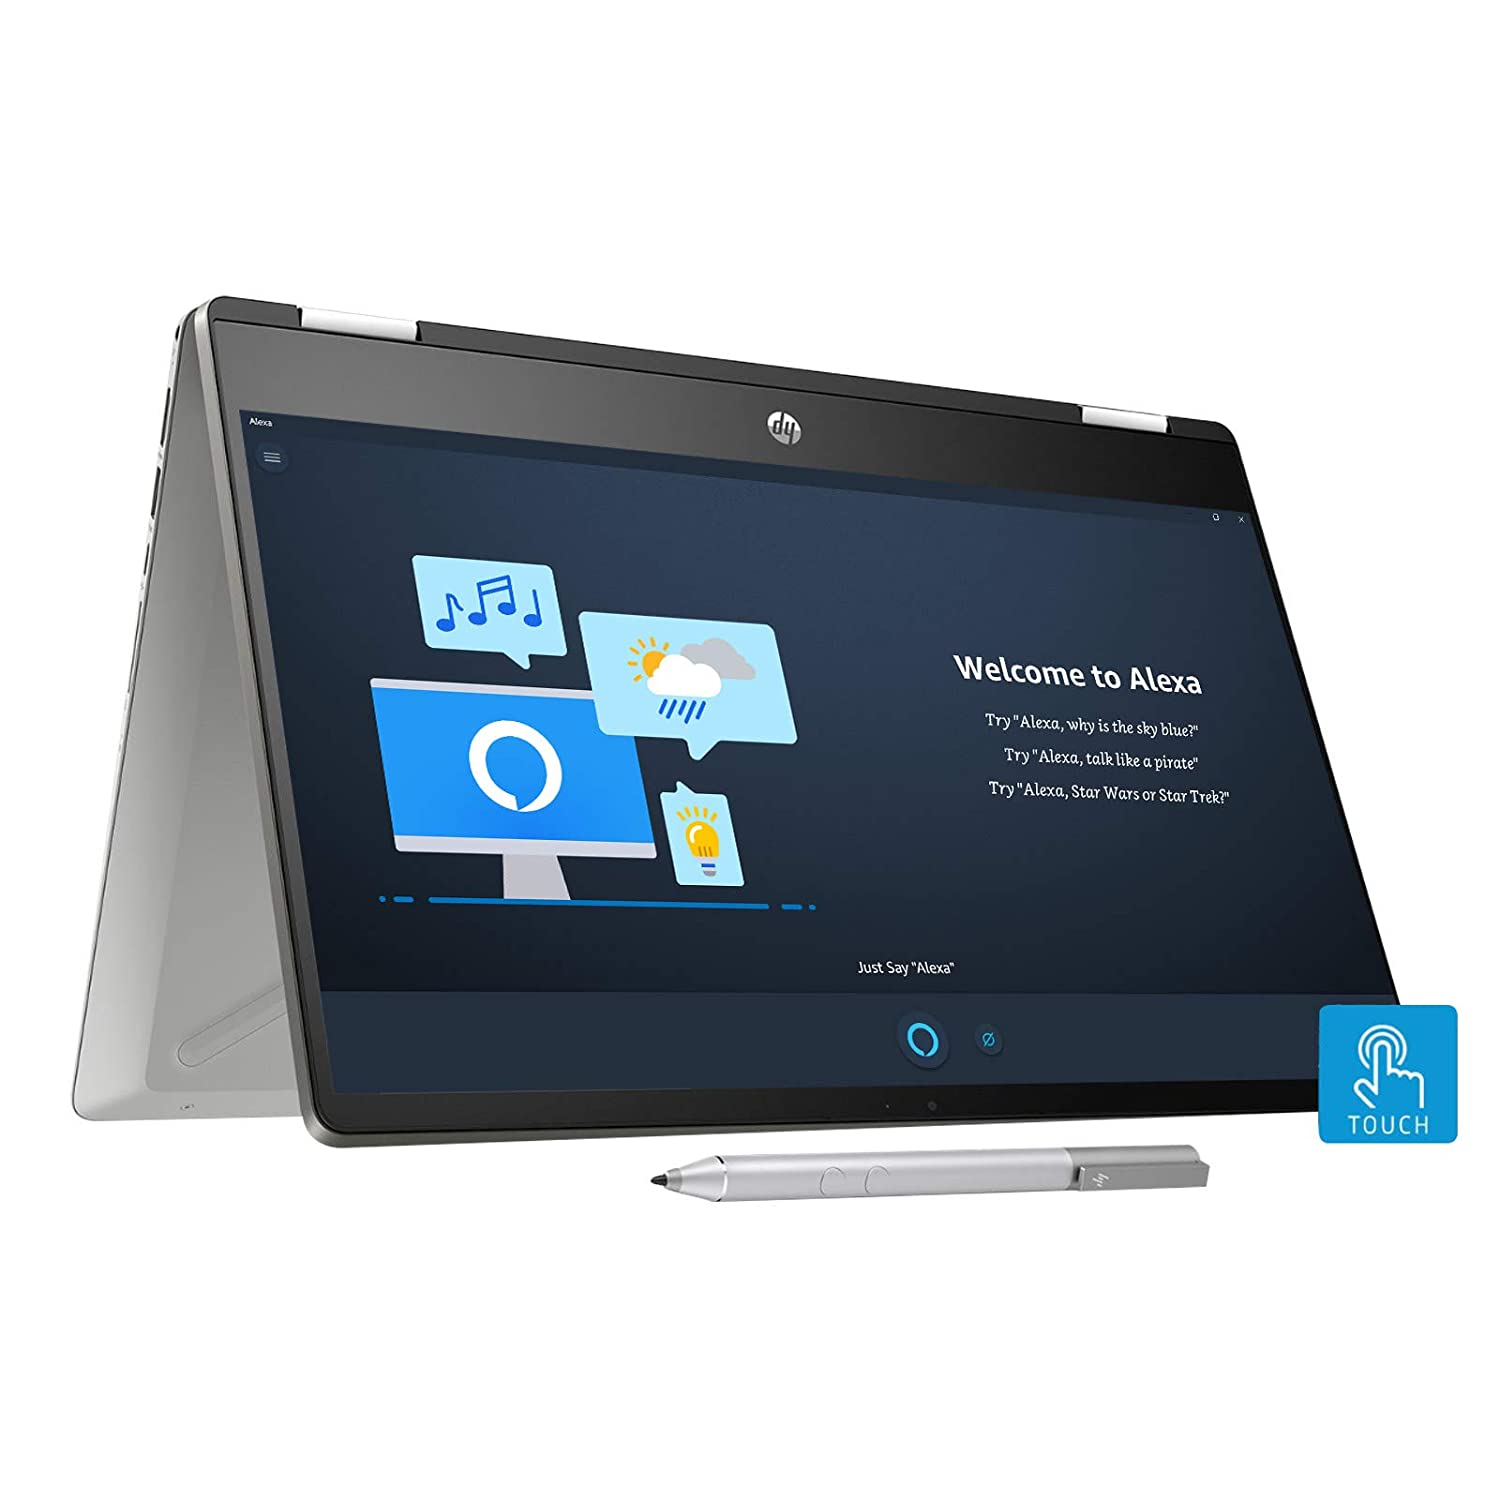 HP Pavilion x360 Core i5 10th Gen 14-inch FHD Touchscreen 2-in-1 Alexa Enabled Laptop